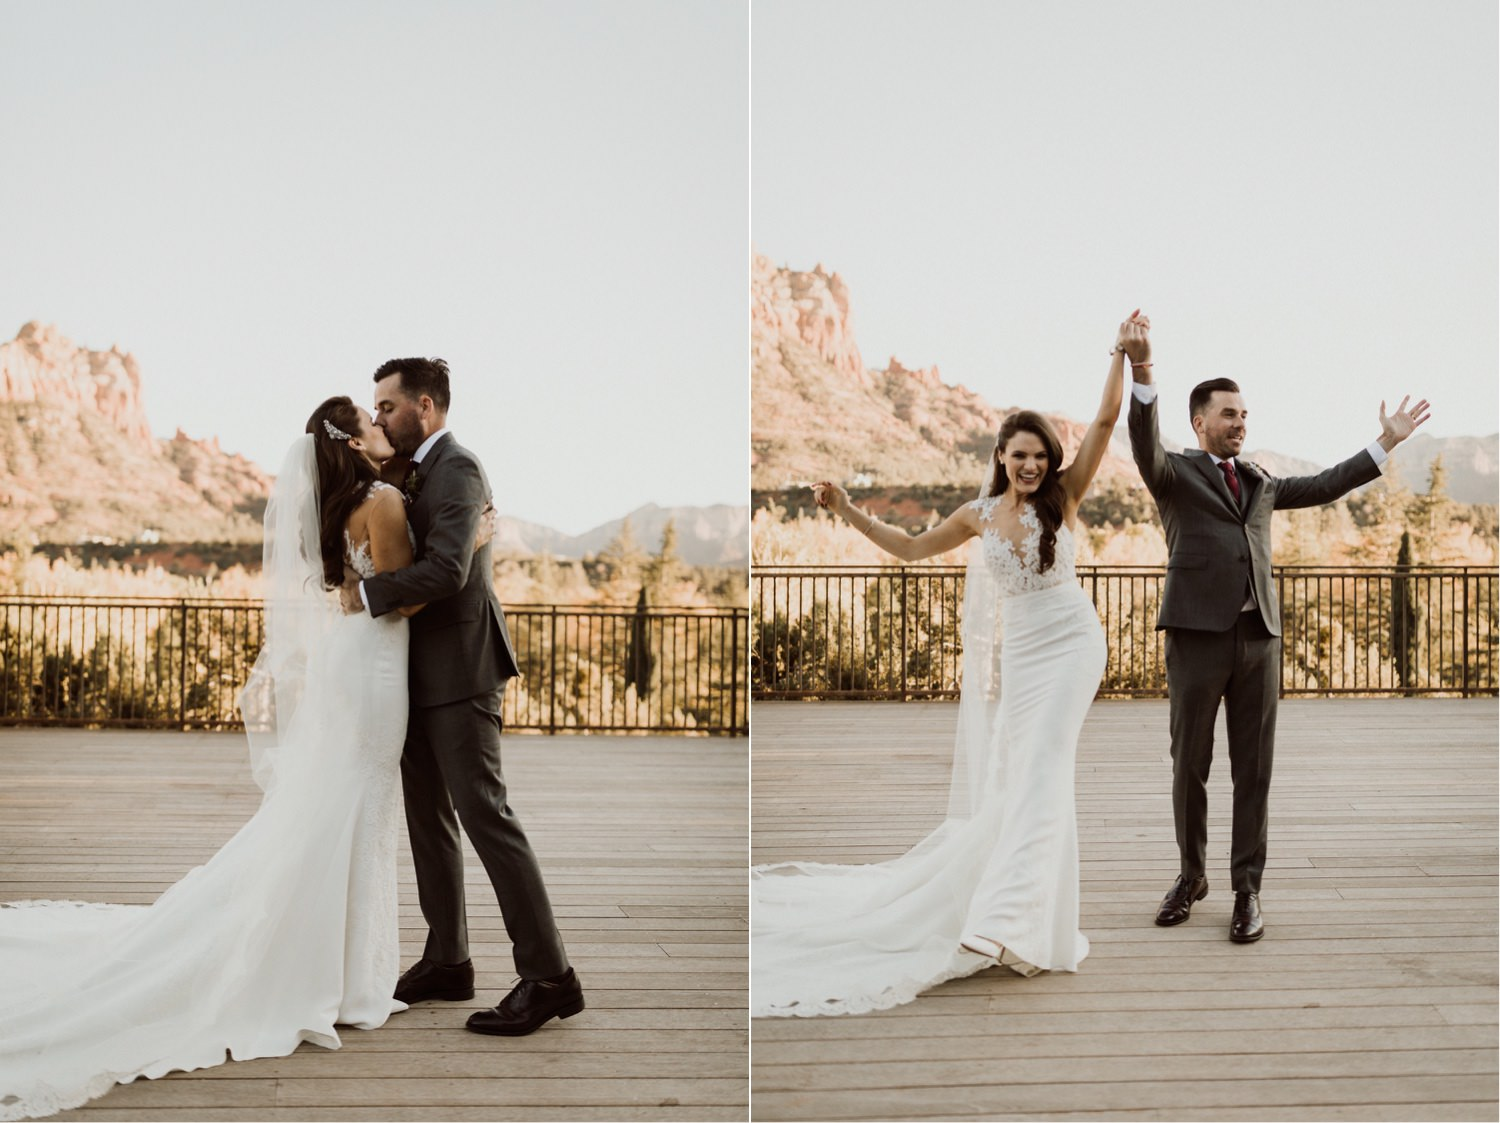 28_intimate-sedona-arizona-wedding-40_intimate-sedona-arizona-wedding-41.jpg